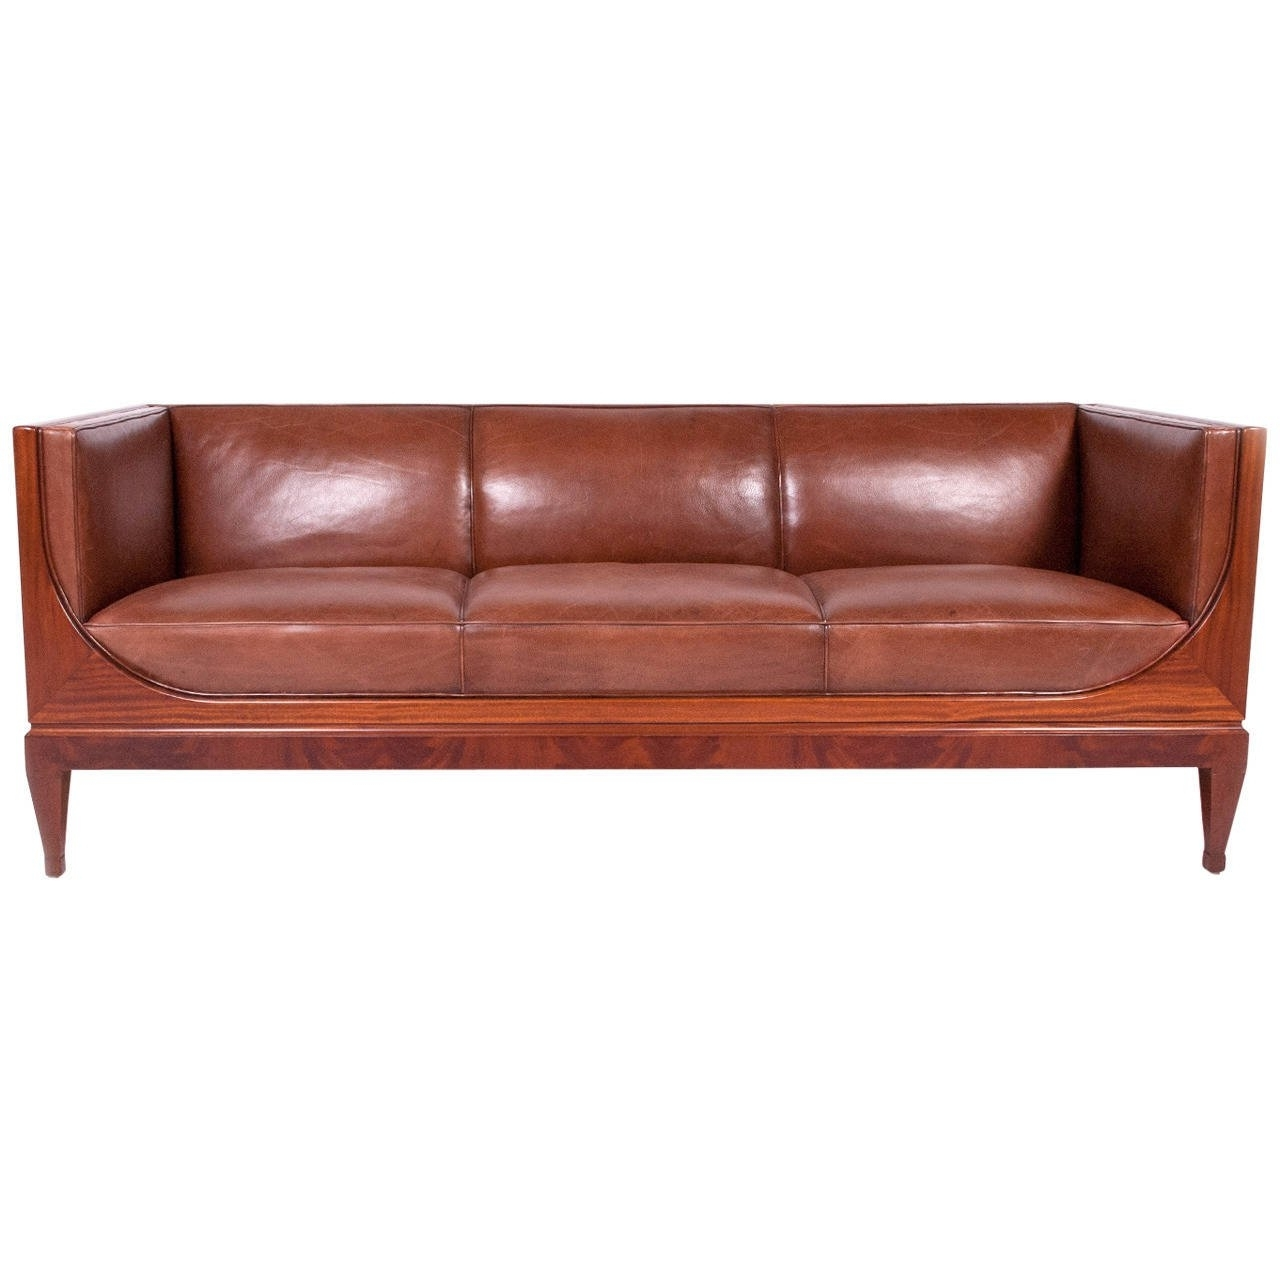 Most Recent 1930s Sofas – 122 For Sale At 1stdibs For 1930s Sofas (View 13 of 20)